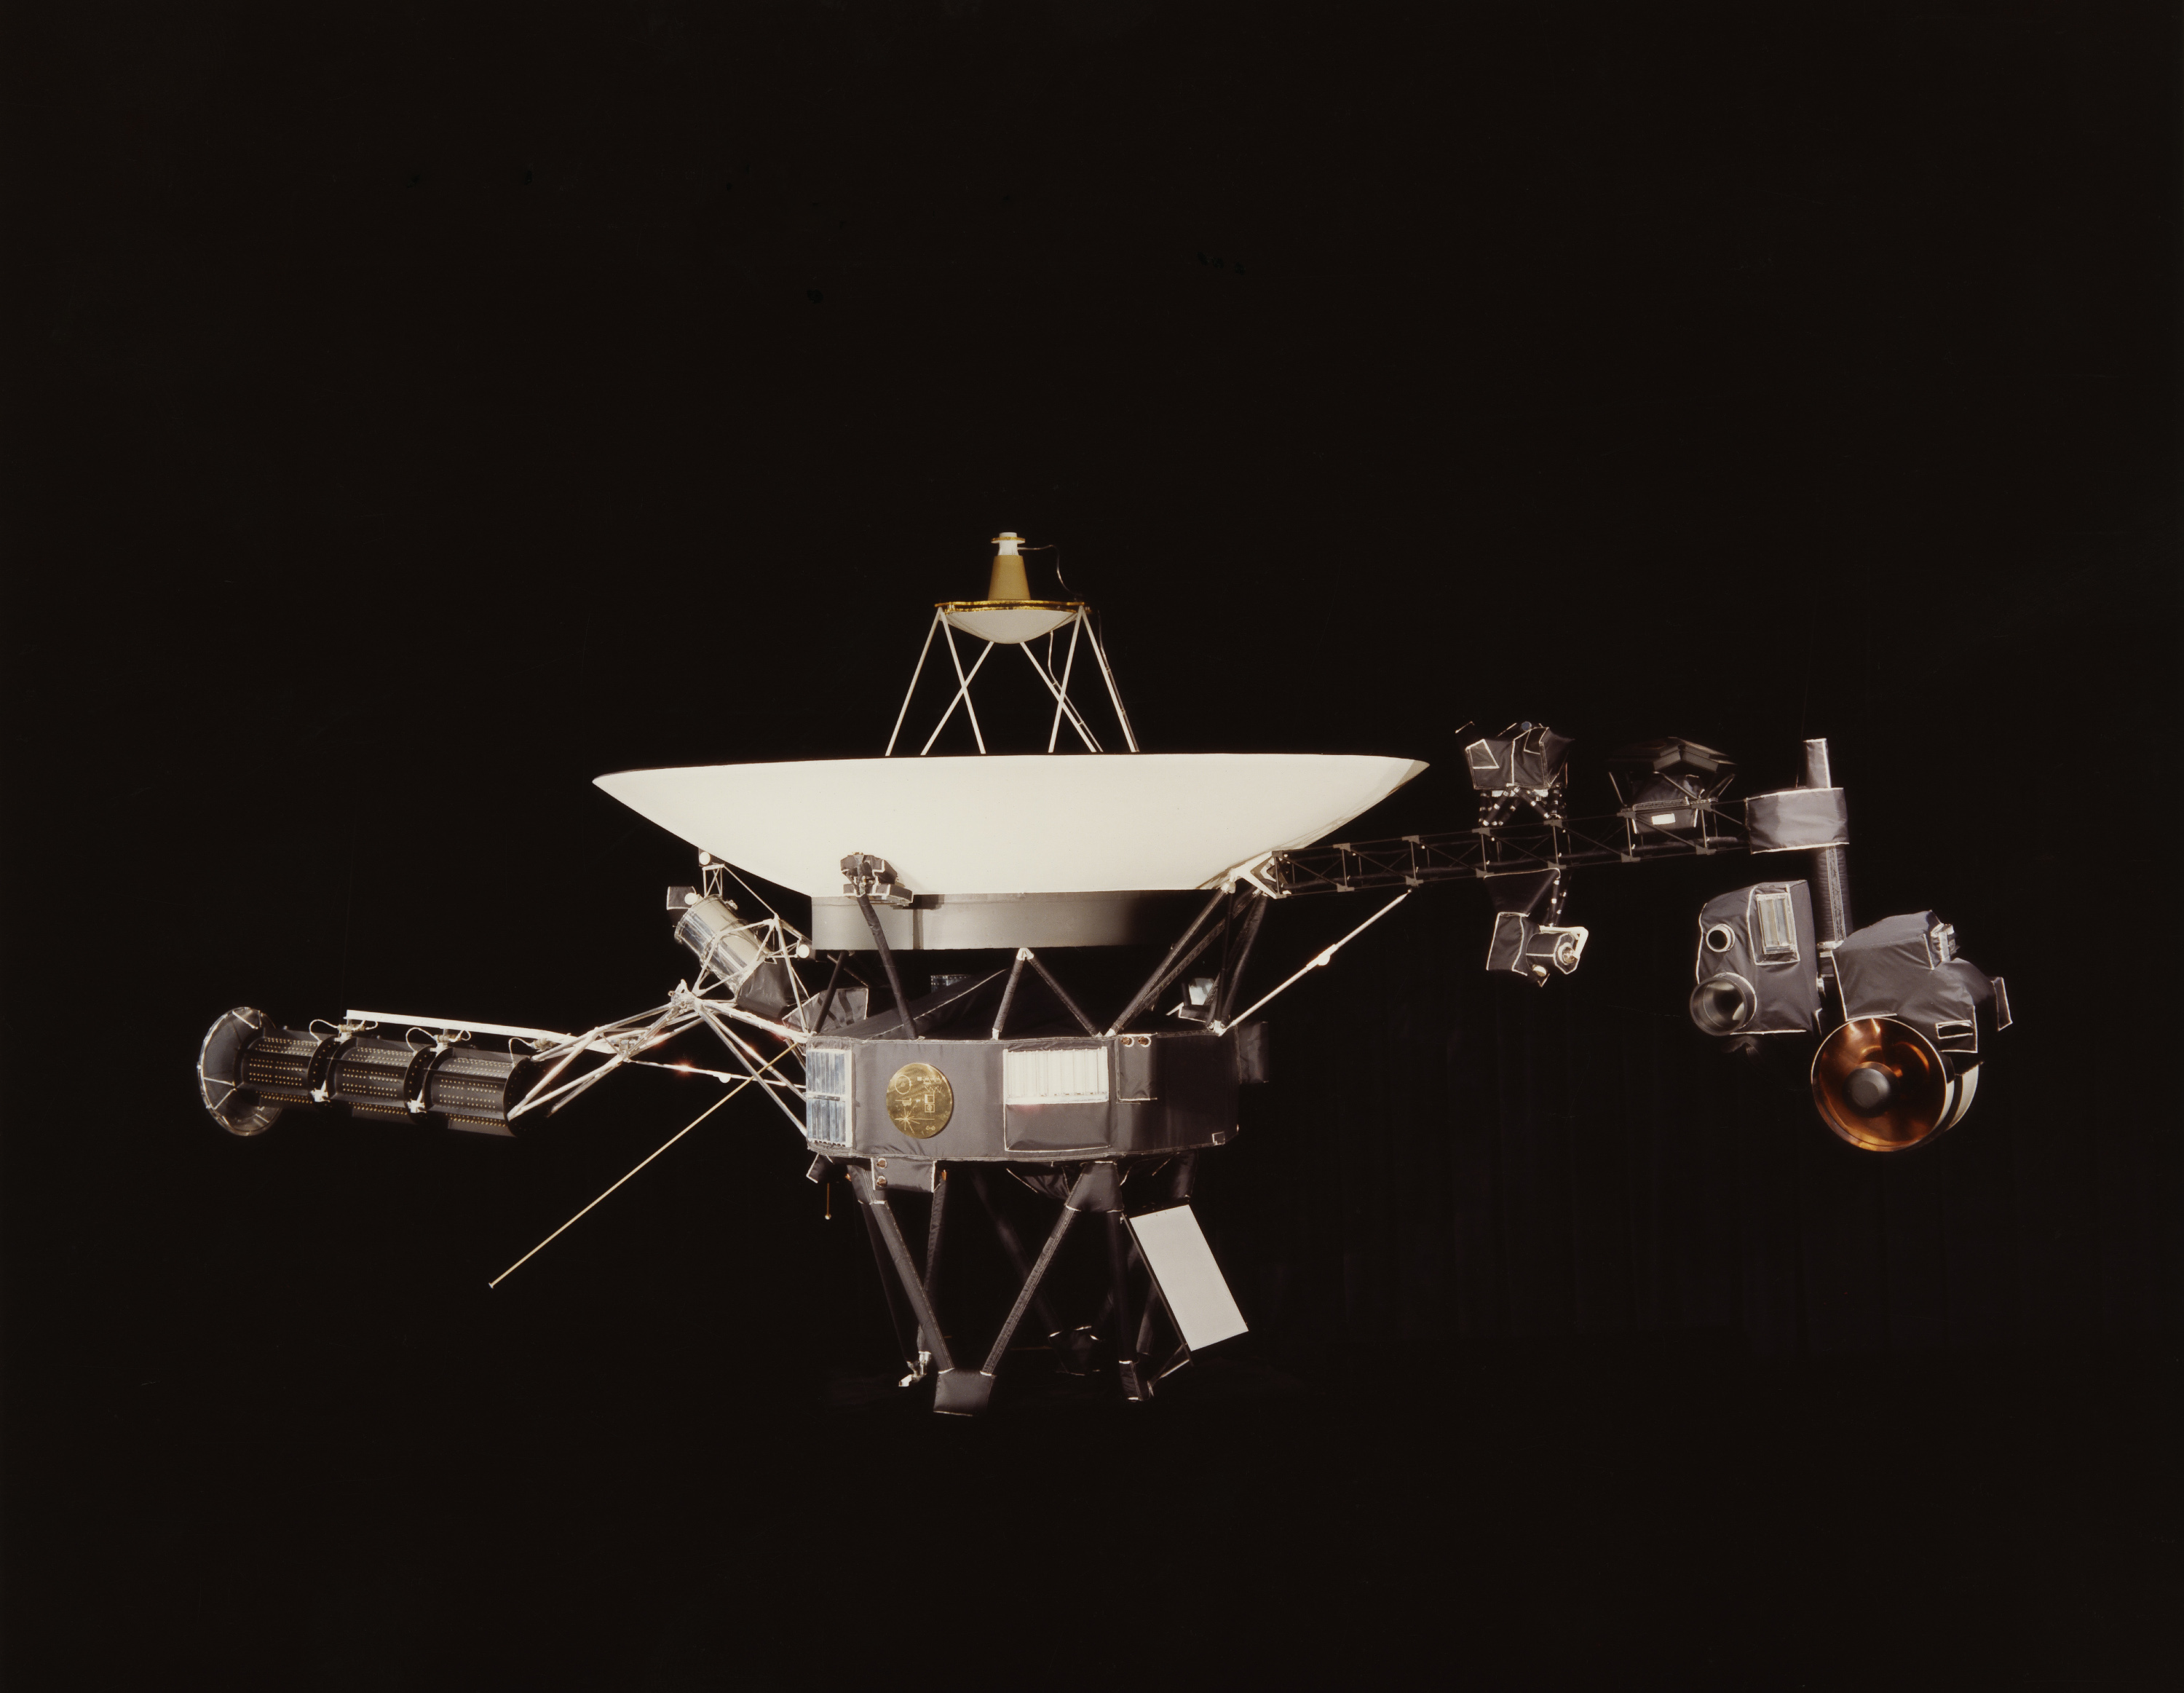 NASA's Voyager 1 is the most travelled man-made object in existence.